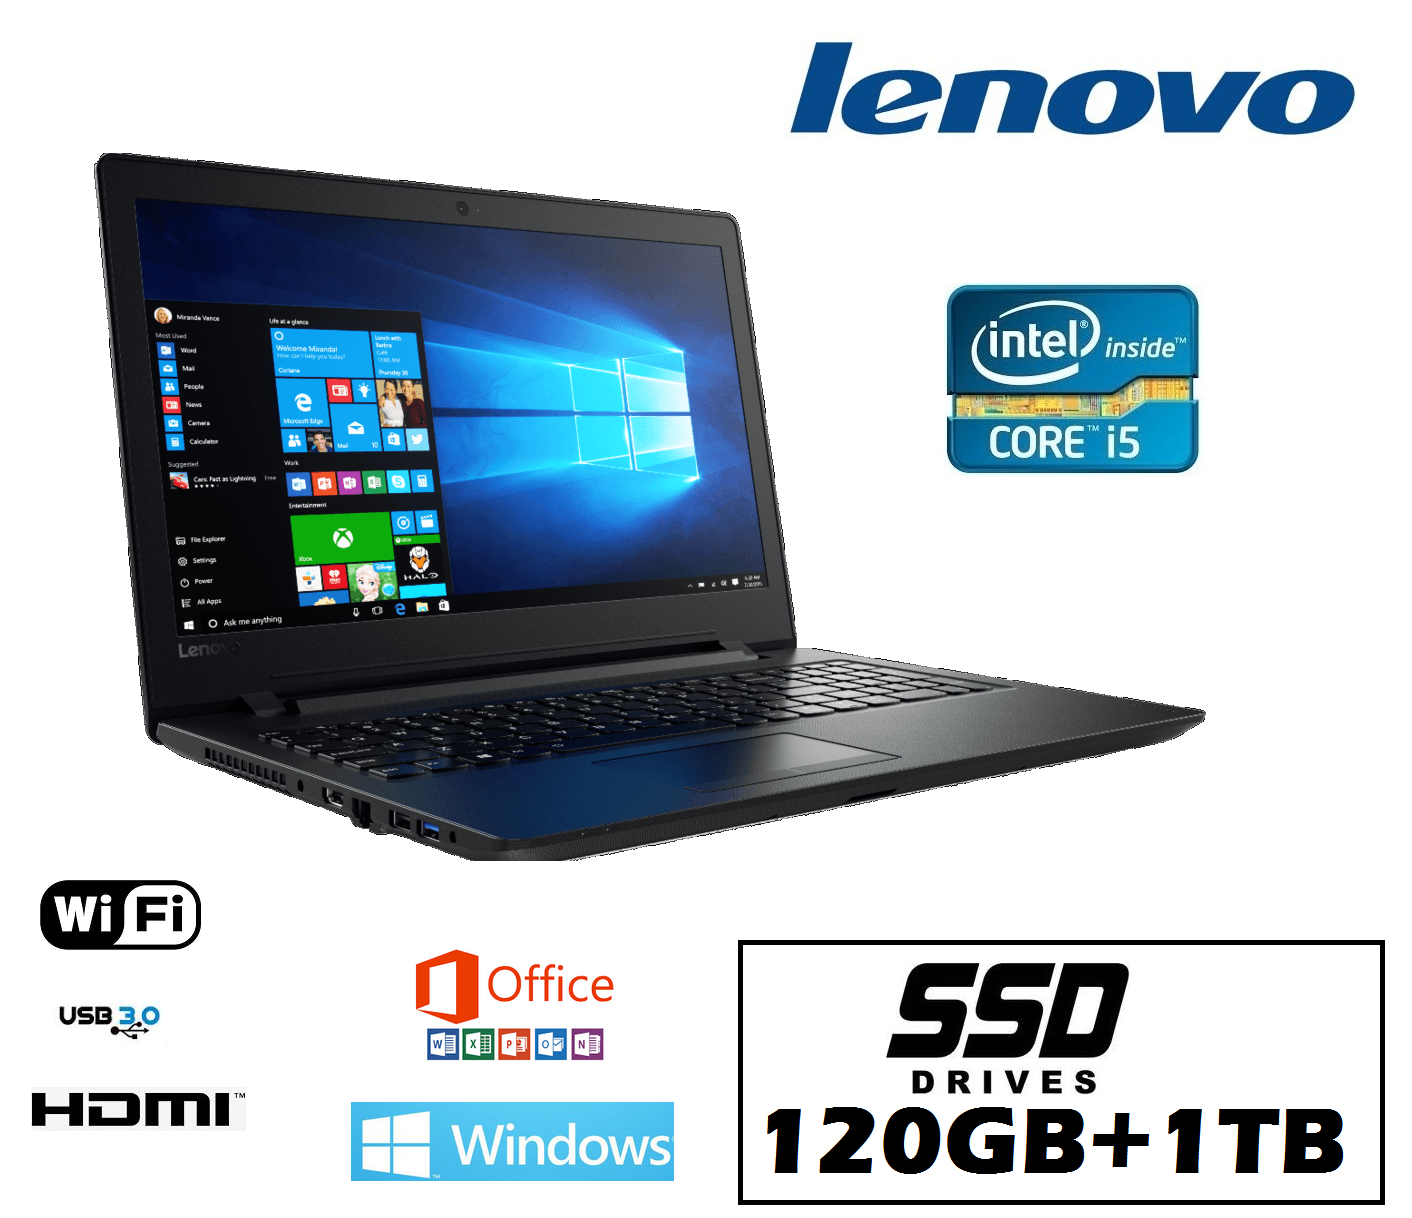 ordenador ultrabook LENOVO INTEL i5 120ssd + 1tb WINDOWS10 PROFESIONAL OFFICE